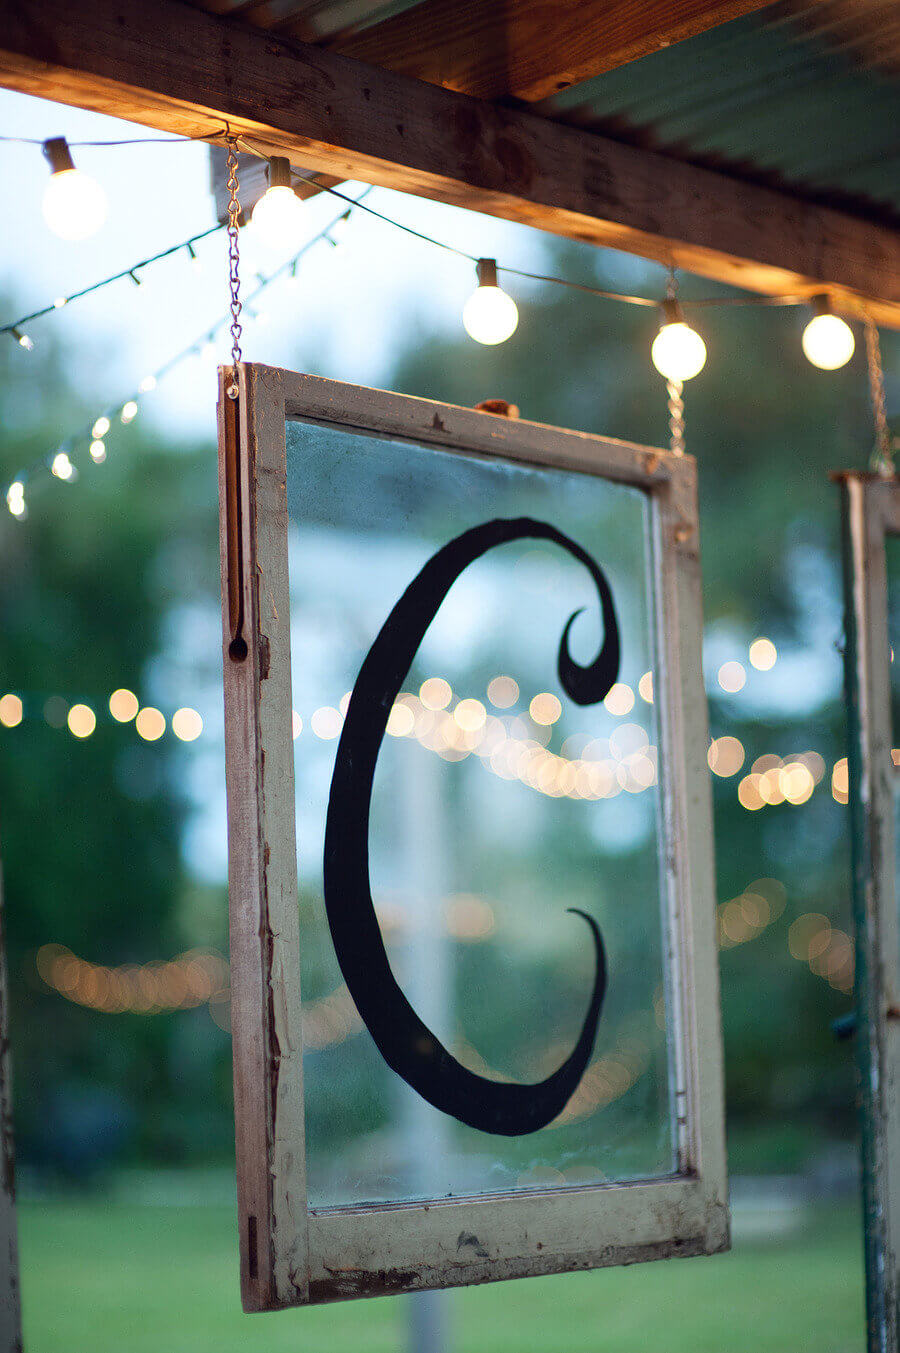 Paint a Pretty Initial on a Window